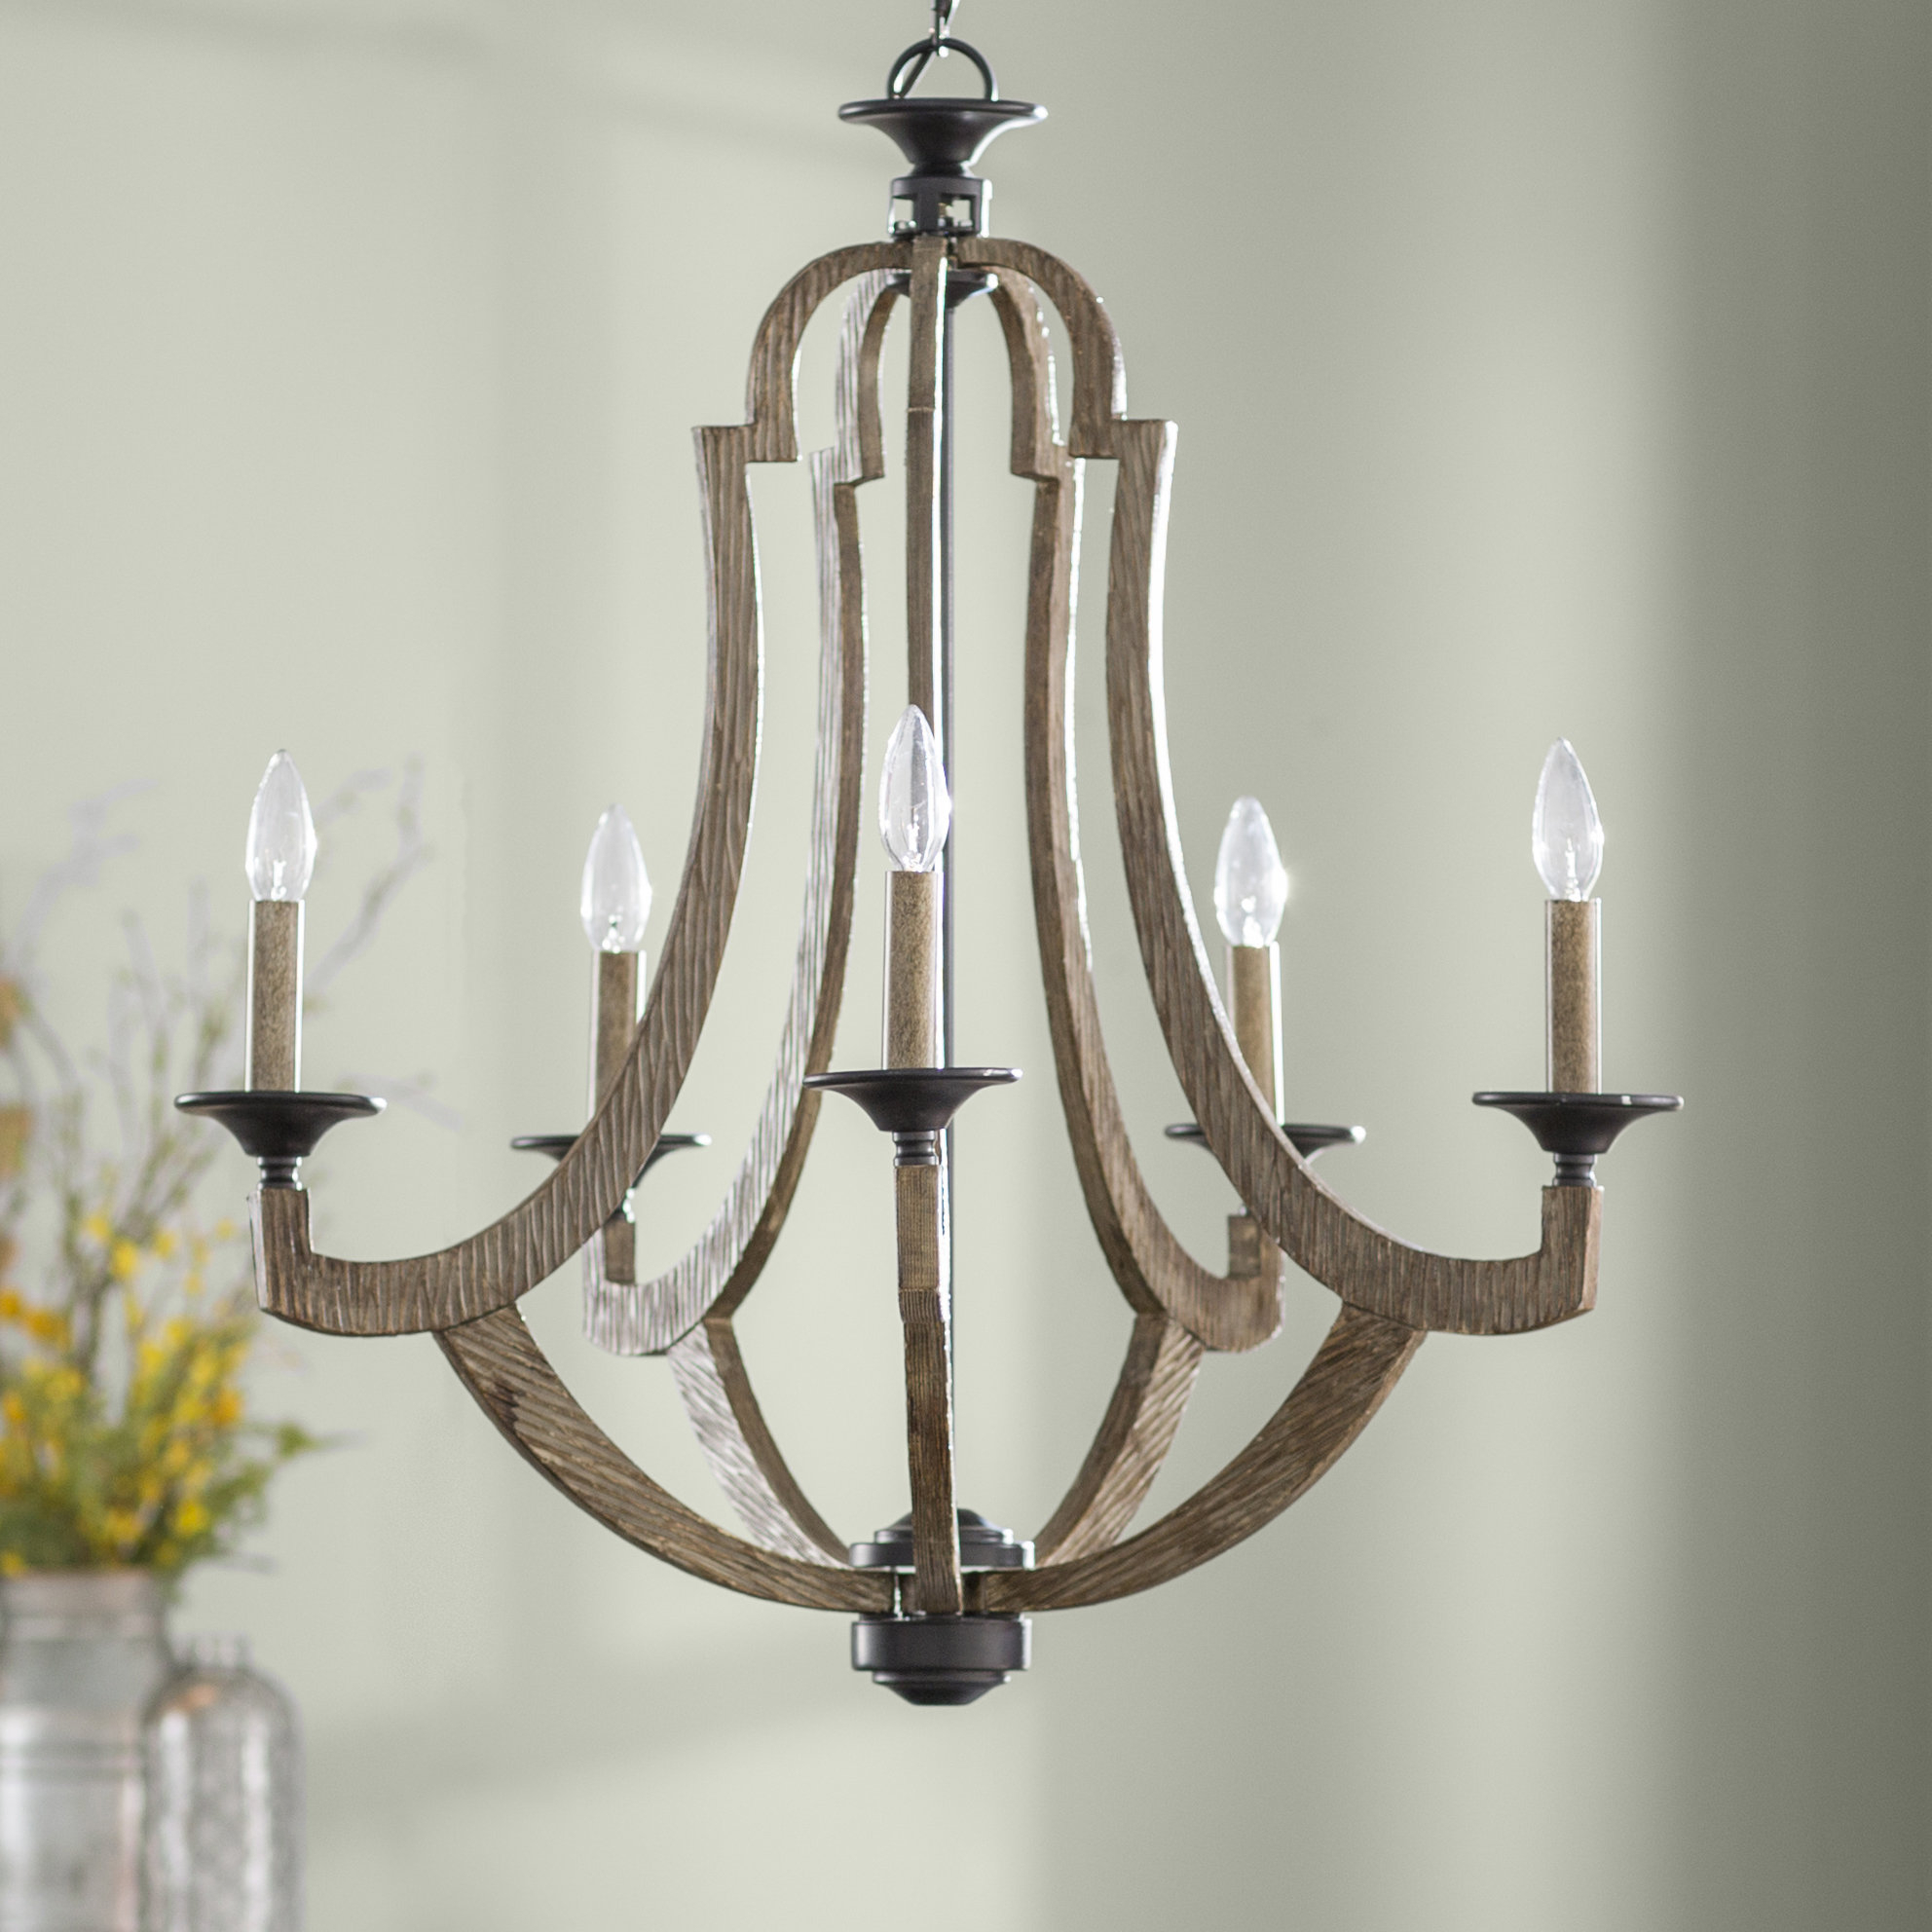 Well Liked Laurel Foundry Modern Farmhouse Marcoux 5 Light Empire Chandelier For Kenna 5 Light Empire Chandeliers (Gallery 9 of 20)